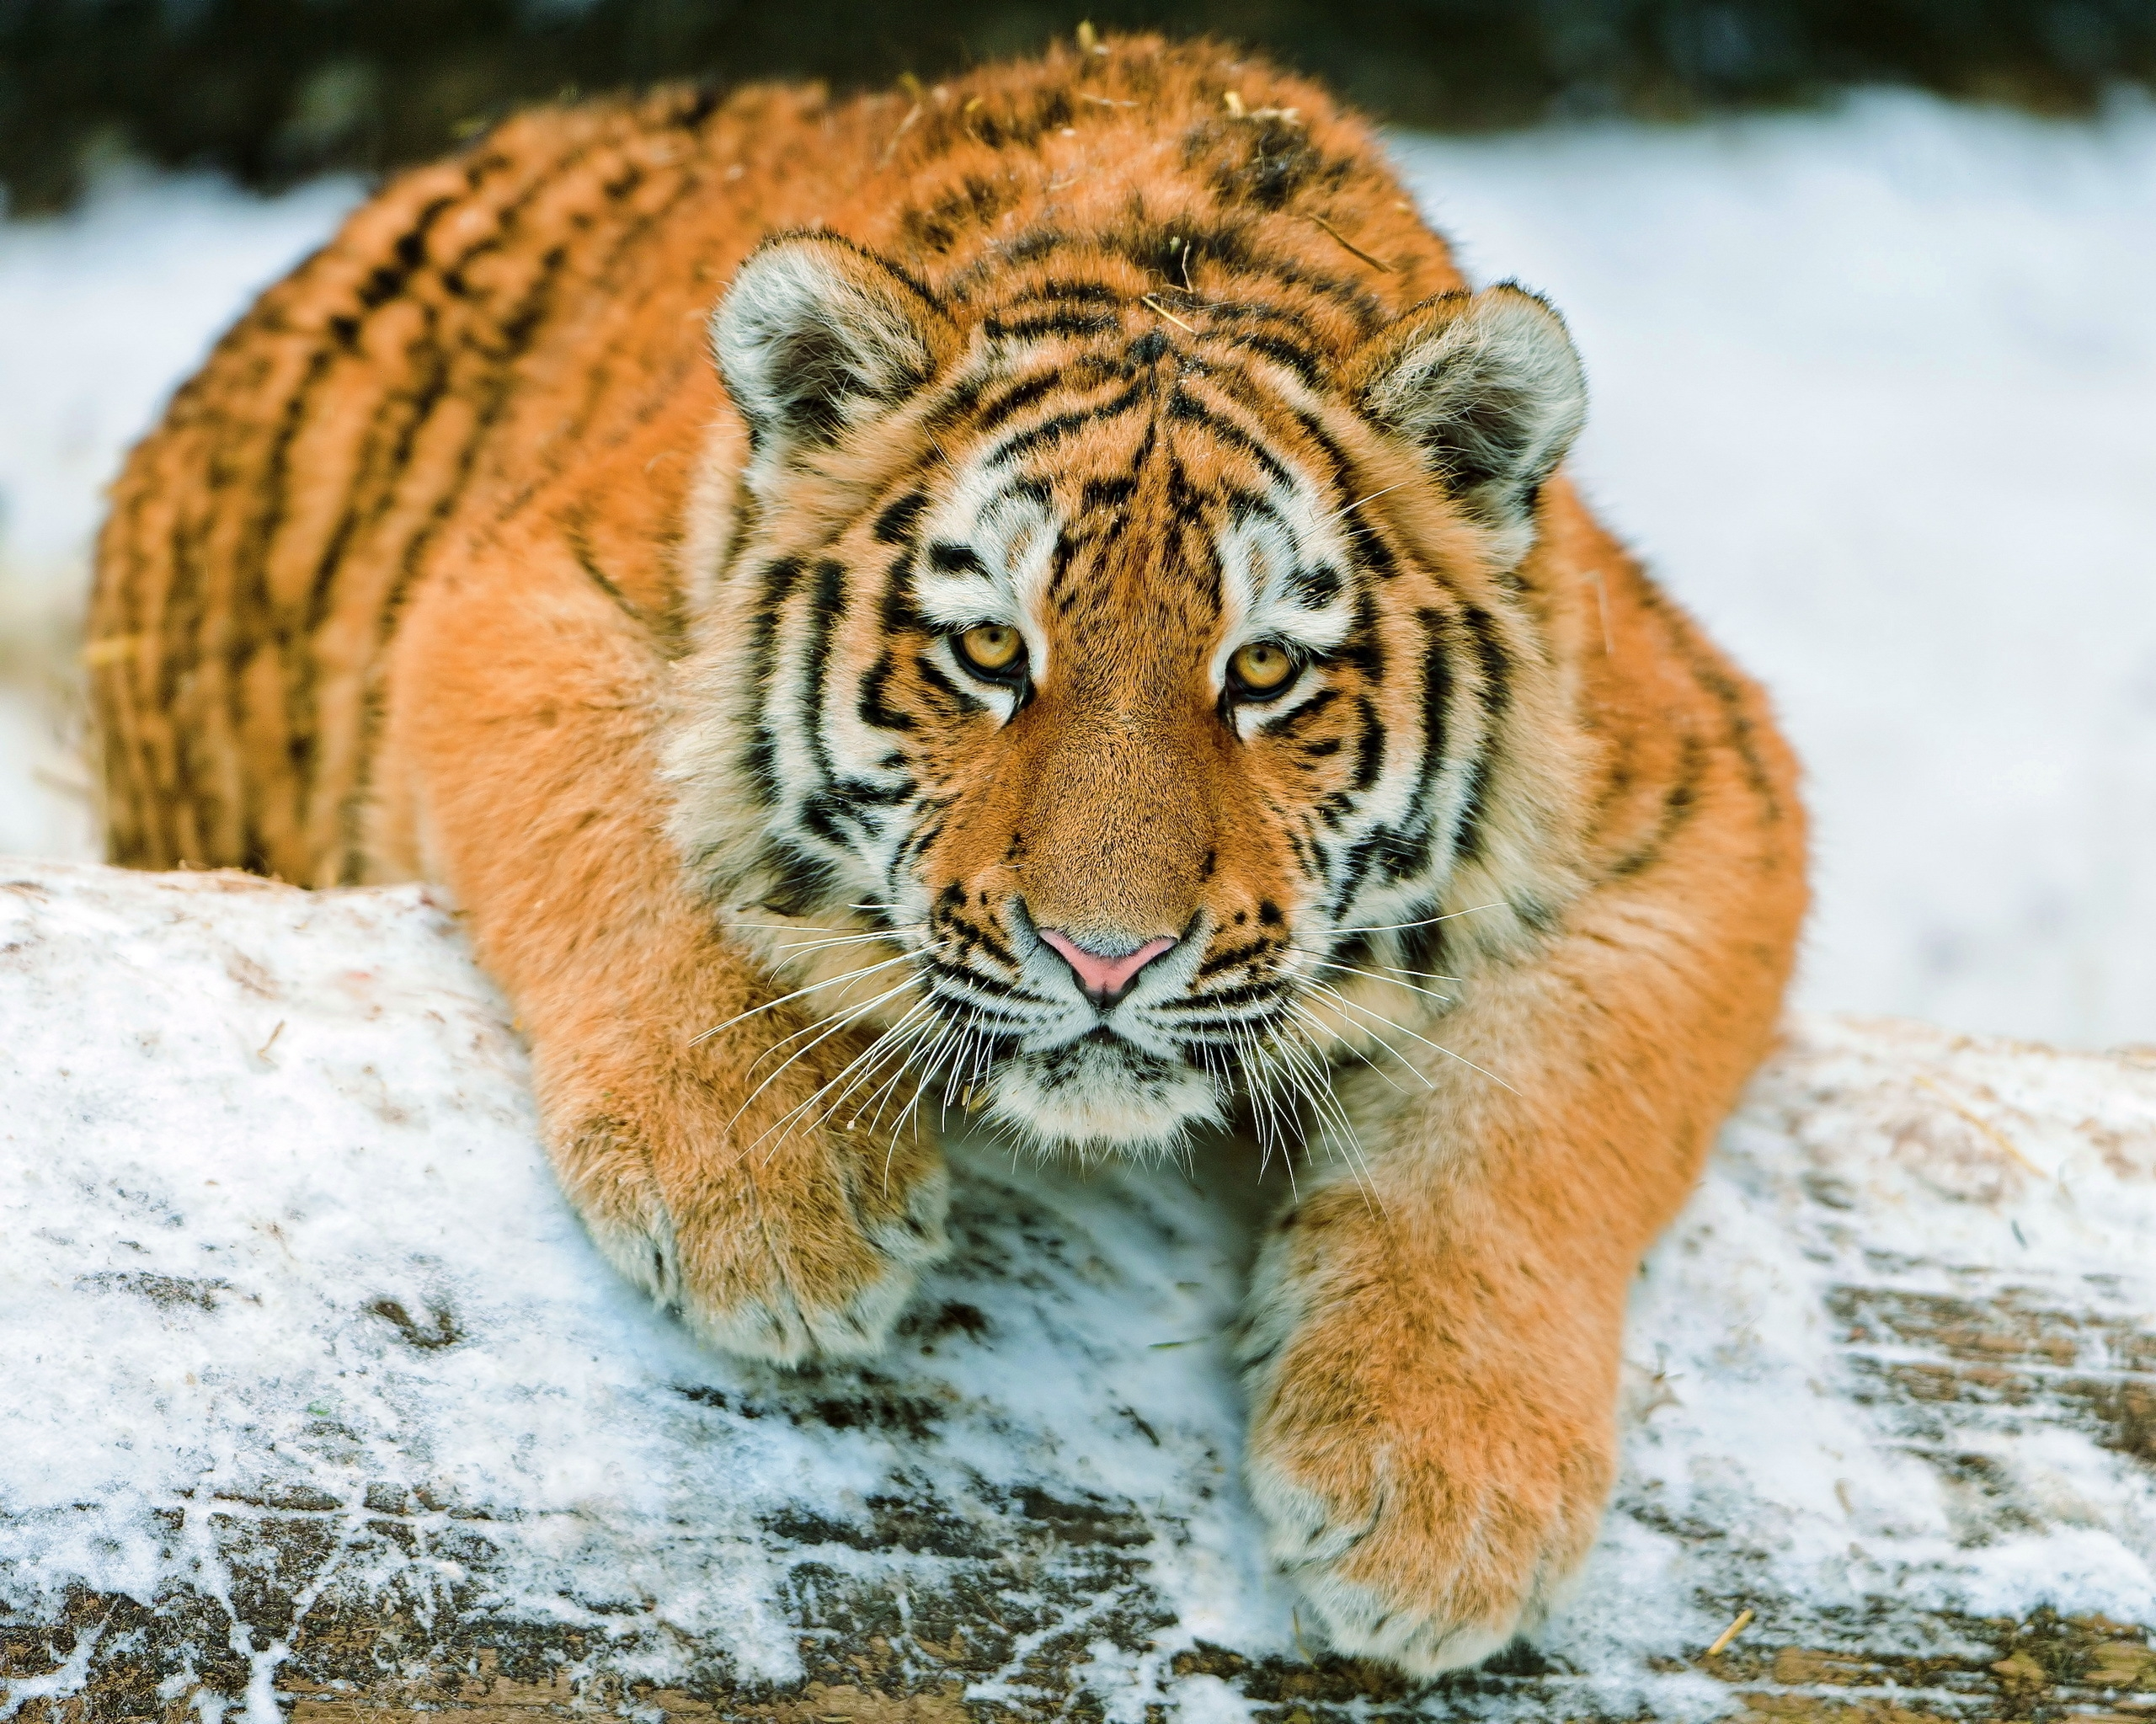 126287 download wallpaper Animals, Tiger Cub, Tiger, Predator, Snow, To Lie Down, Lie screensavers and pictures for free